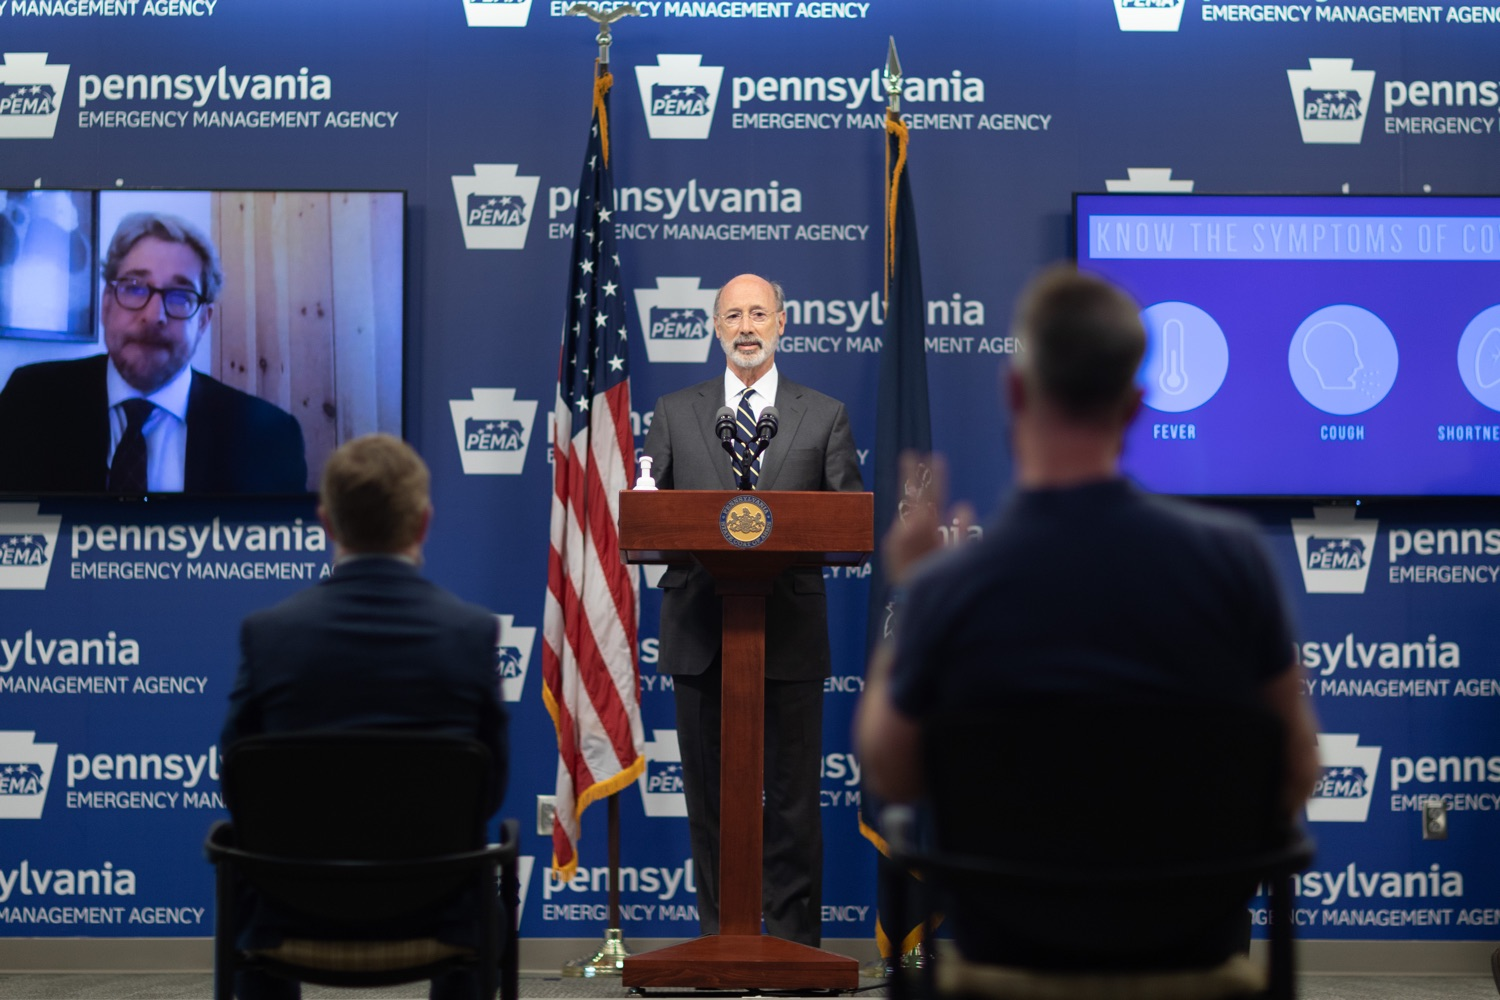 """<a href=""""https://filesource.wostreaming.net/commonwealthofpa/photo/18165_GOV_covid_mitigation_dz_04.jpg"""" target=""""_blank"""">⇣Download Photo<br></a>Pennsylvania Governor Tom Wolf speaking with the press. Governor Tom Wolf and Sec. of Health Dr. Rachel Levine today signed new orders for targeted mitigation efforts in response to the recent rise in COVID cases, primarily in southwest Pennsylvania, but also in other counties in the state, influencing the decision for statewide mitigation efforts for bars and restaurants, gatherings and telework. The new orders take effect at 12:01 a.m., Thursday, July 16, 2020.  Harrisburg, - July 15, 2020"""